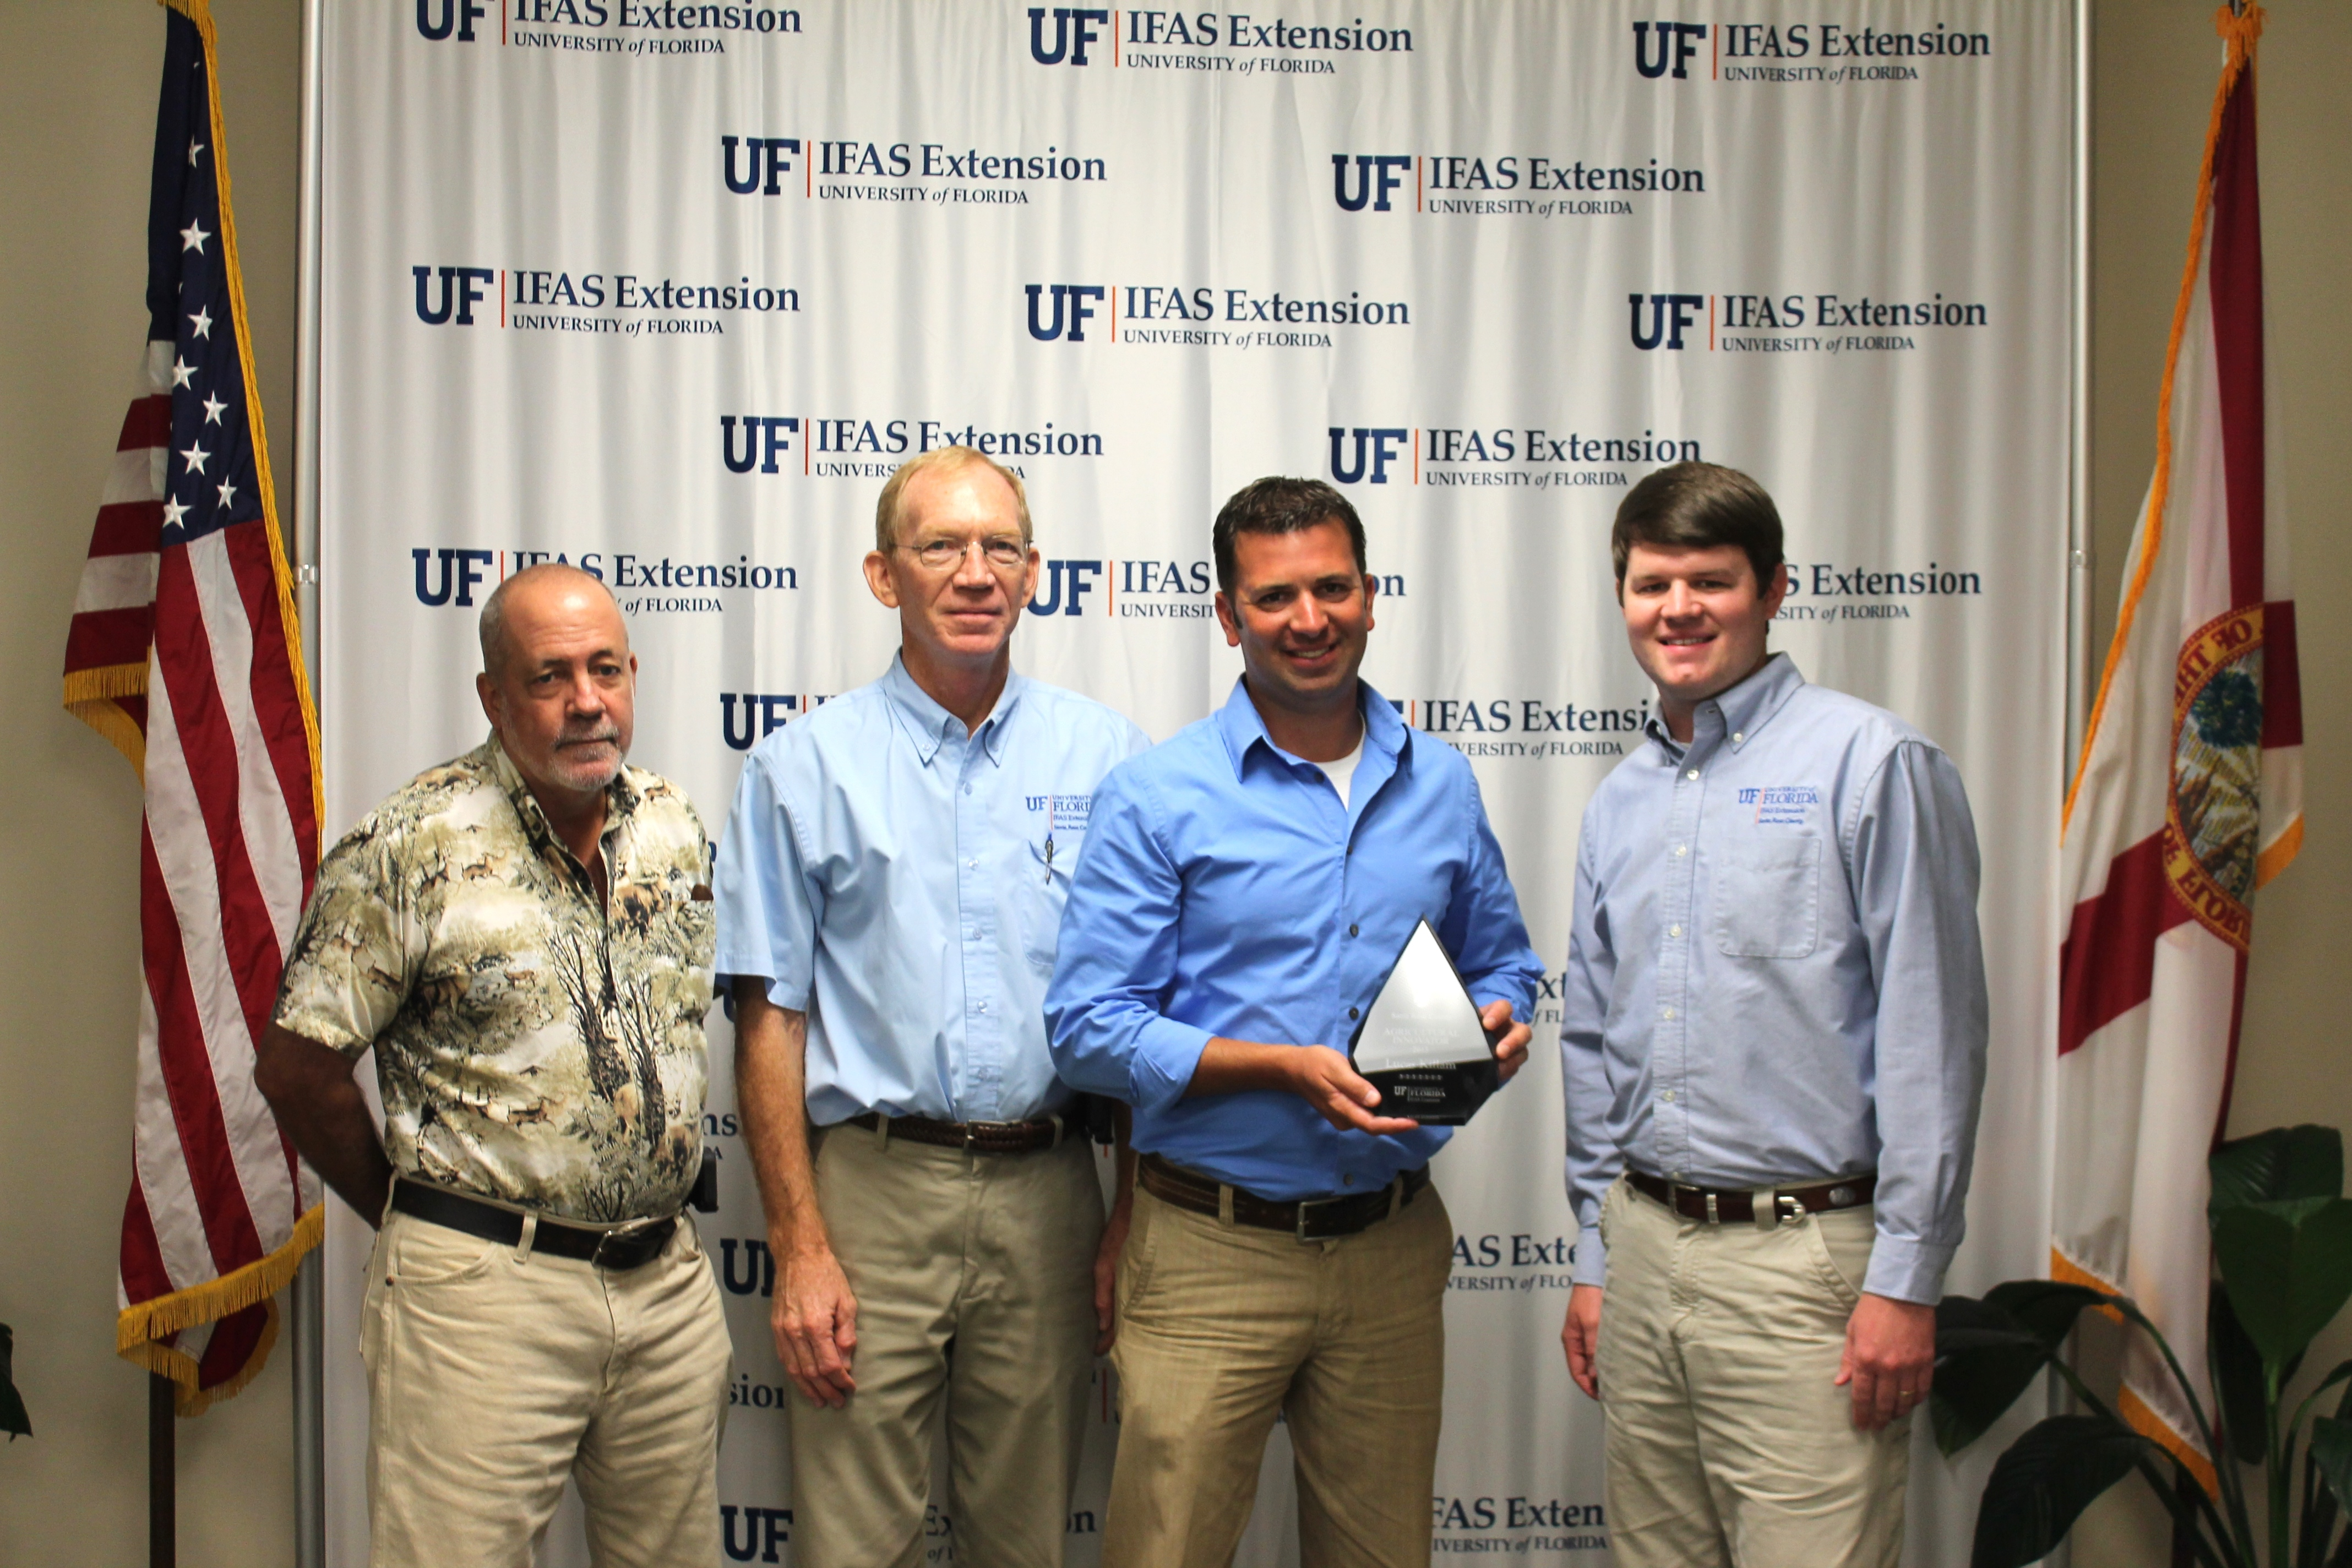 (Left to Right) John Atkins and Mike Donahoe of Santa Rosa County Extension, Lucas Killam, and Blake Thaxton of Santa Rosa County Extension